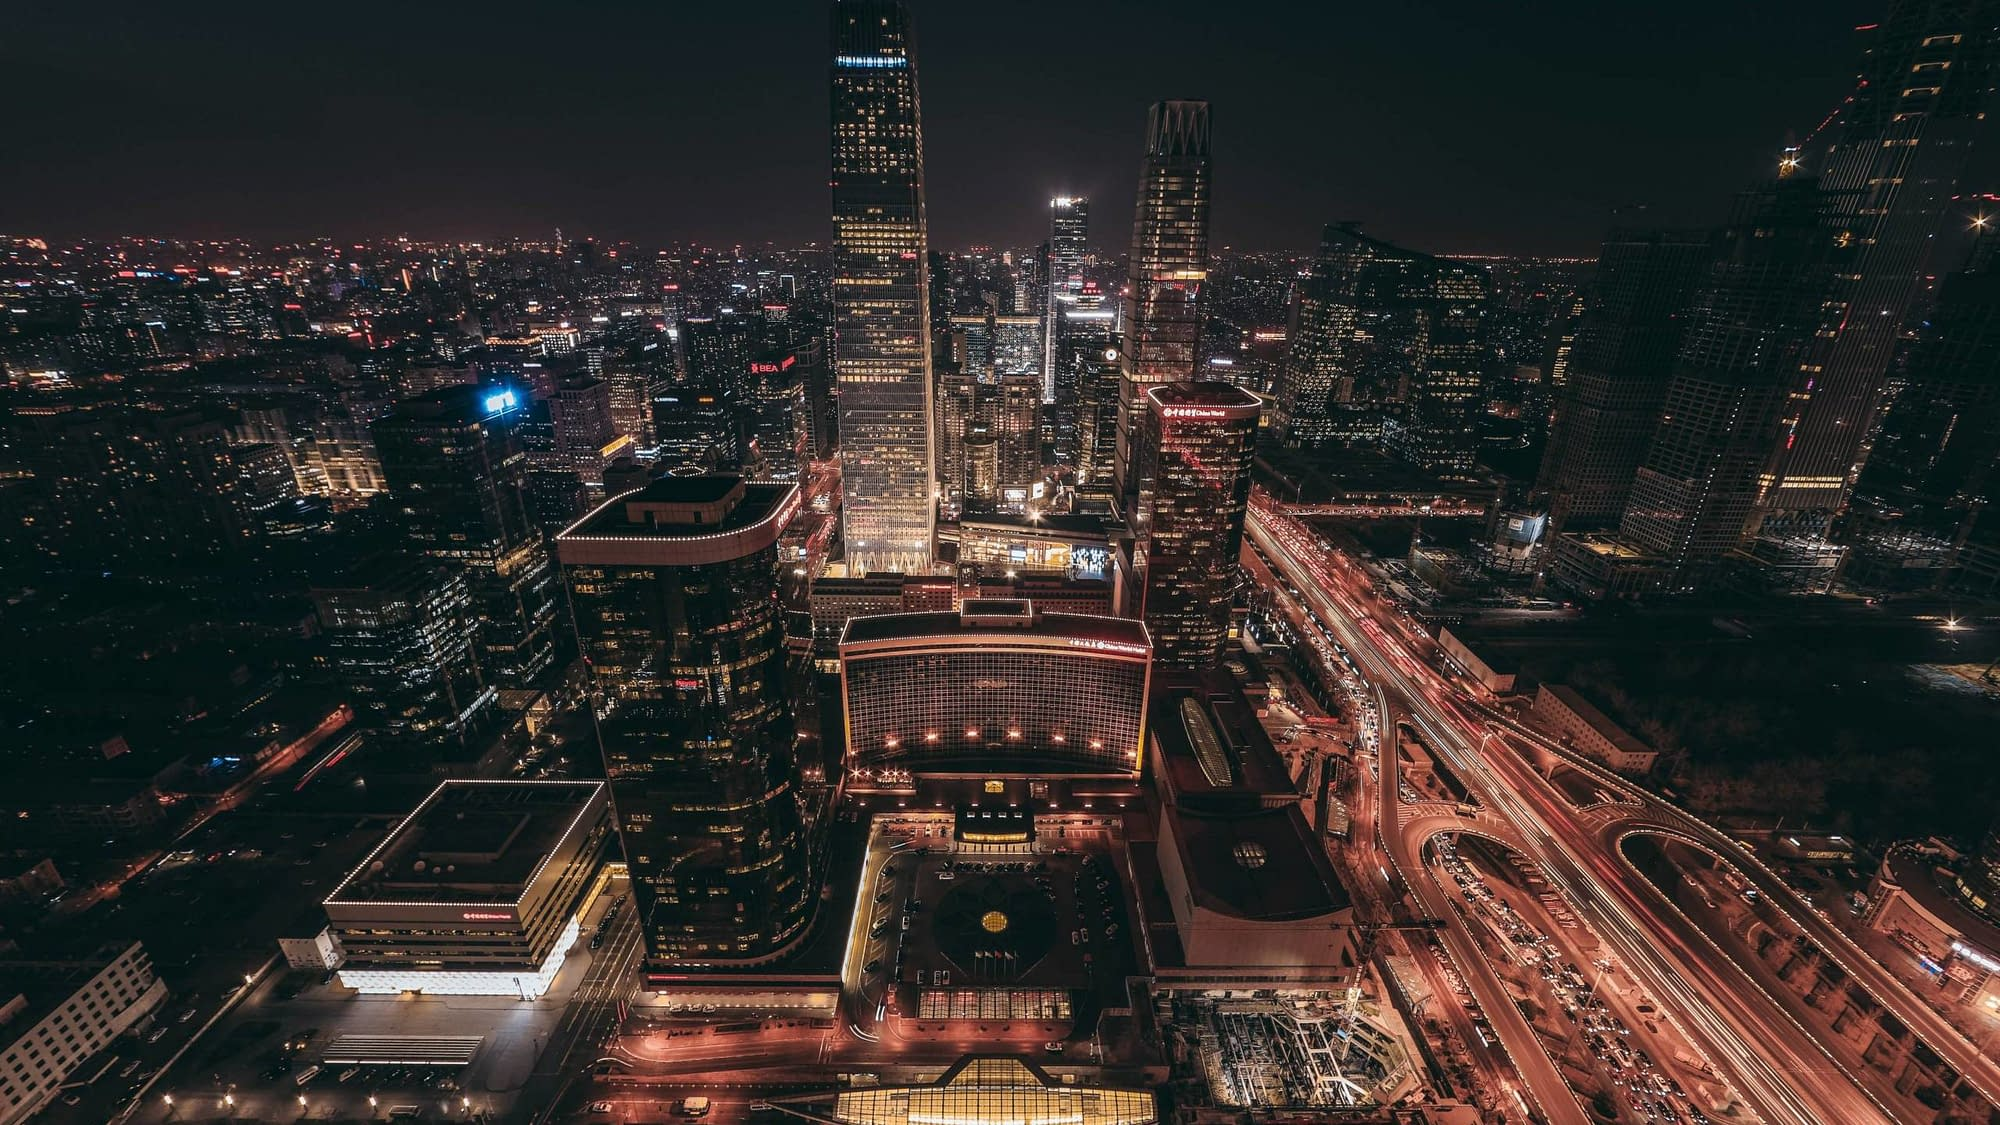 Chinese city by night